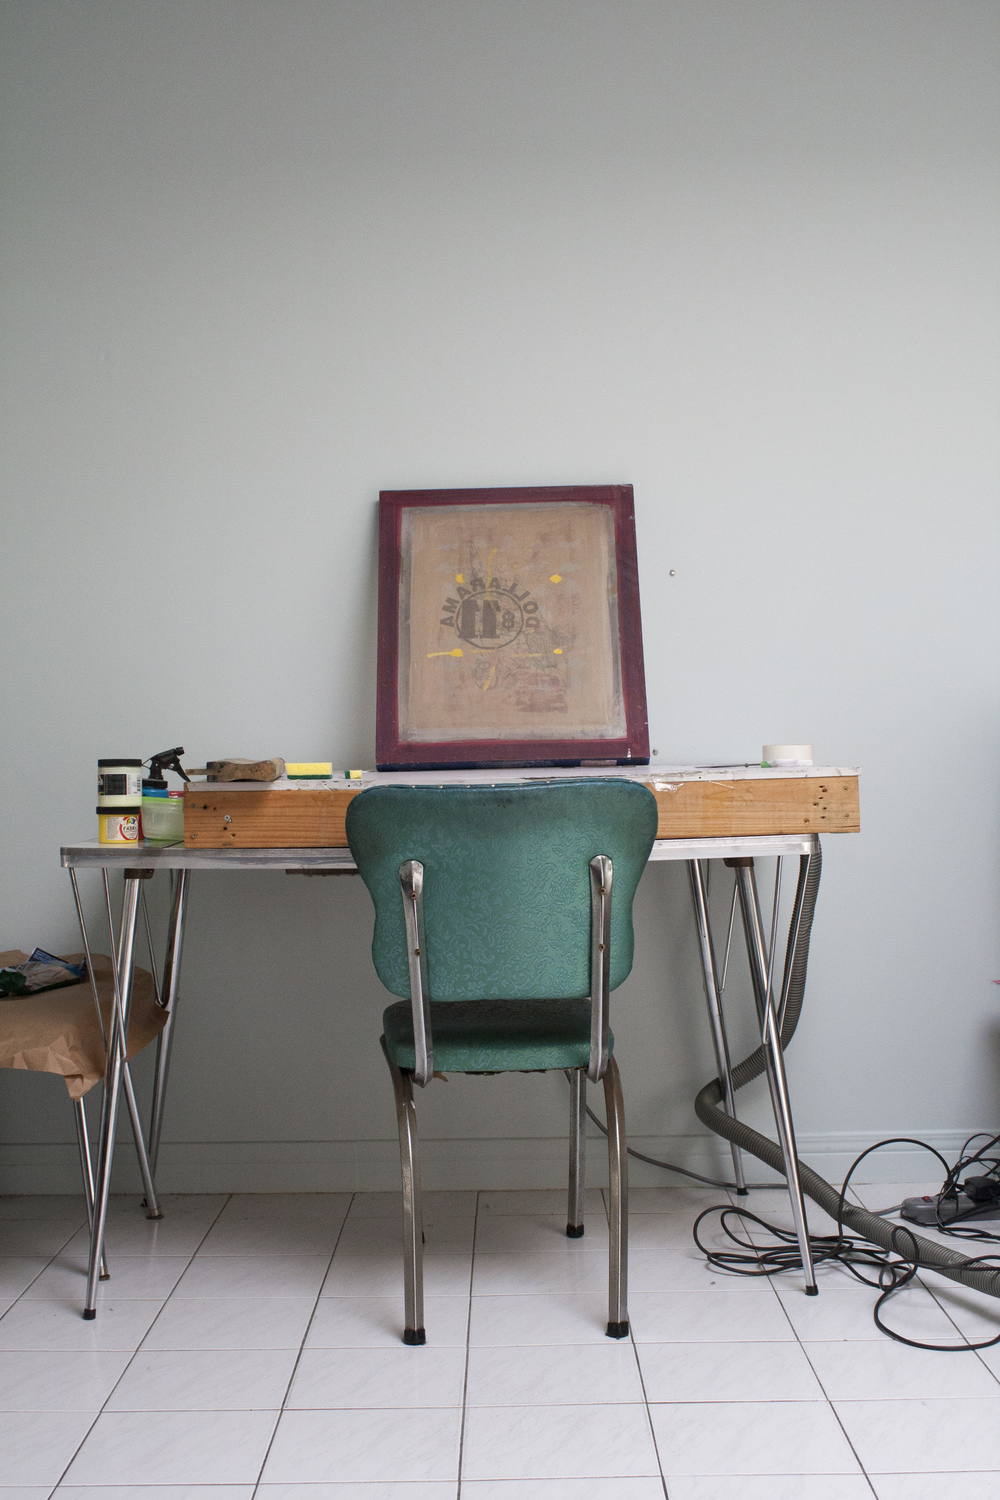 Vacum table which jamiyla rigged up herself for silkscreening